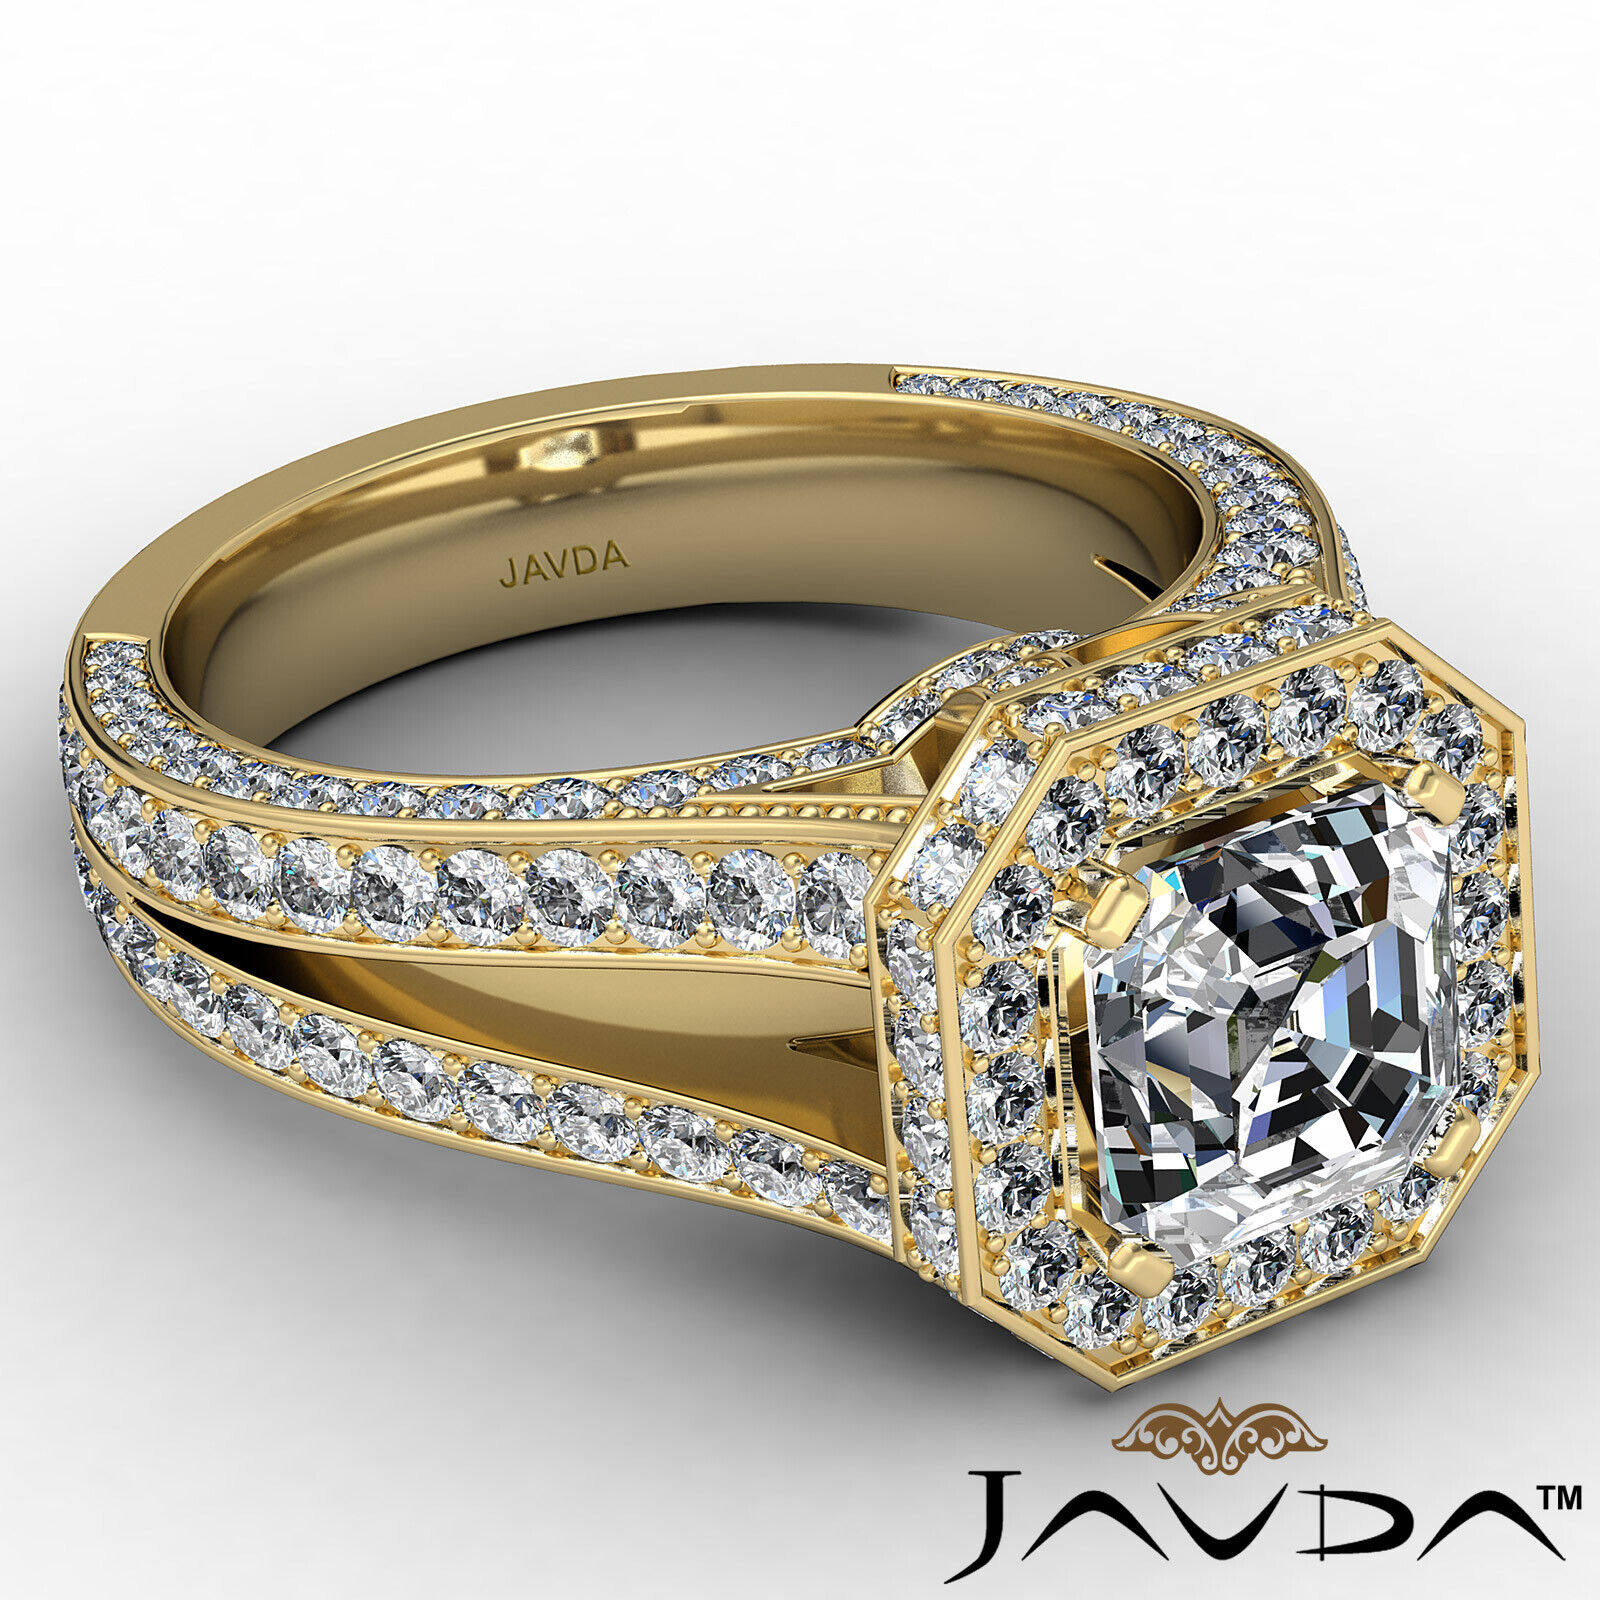 Halo Asscher Diamond Engagement Ring GIA Certified G Color & SI2 clarity 2.4 ctw 7